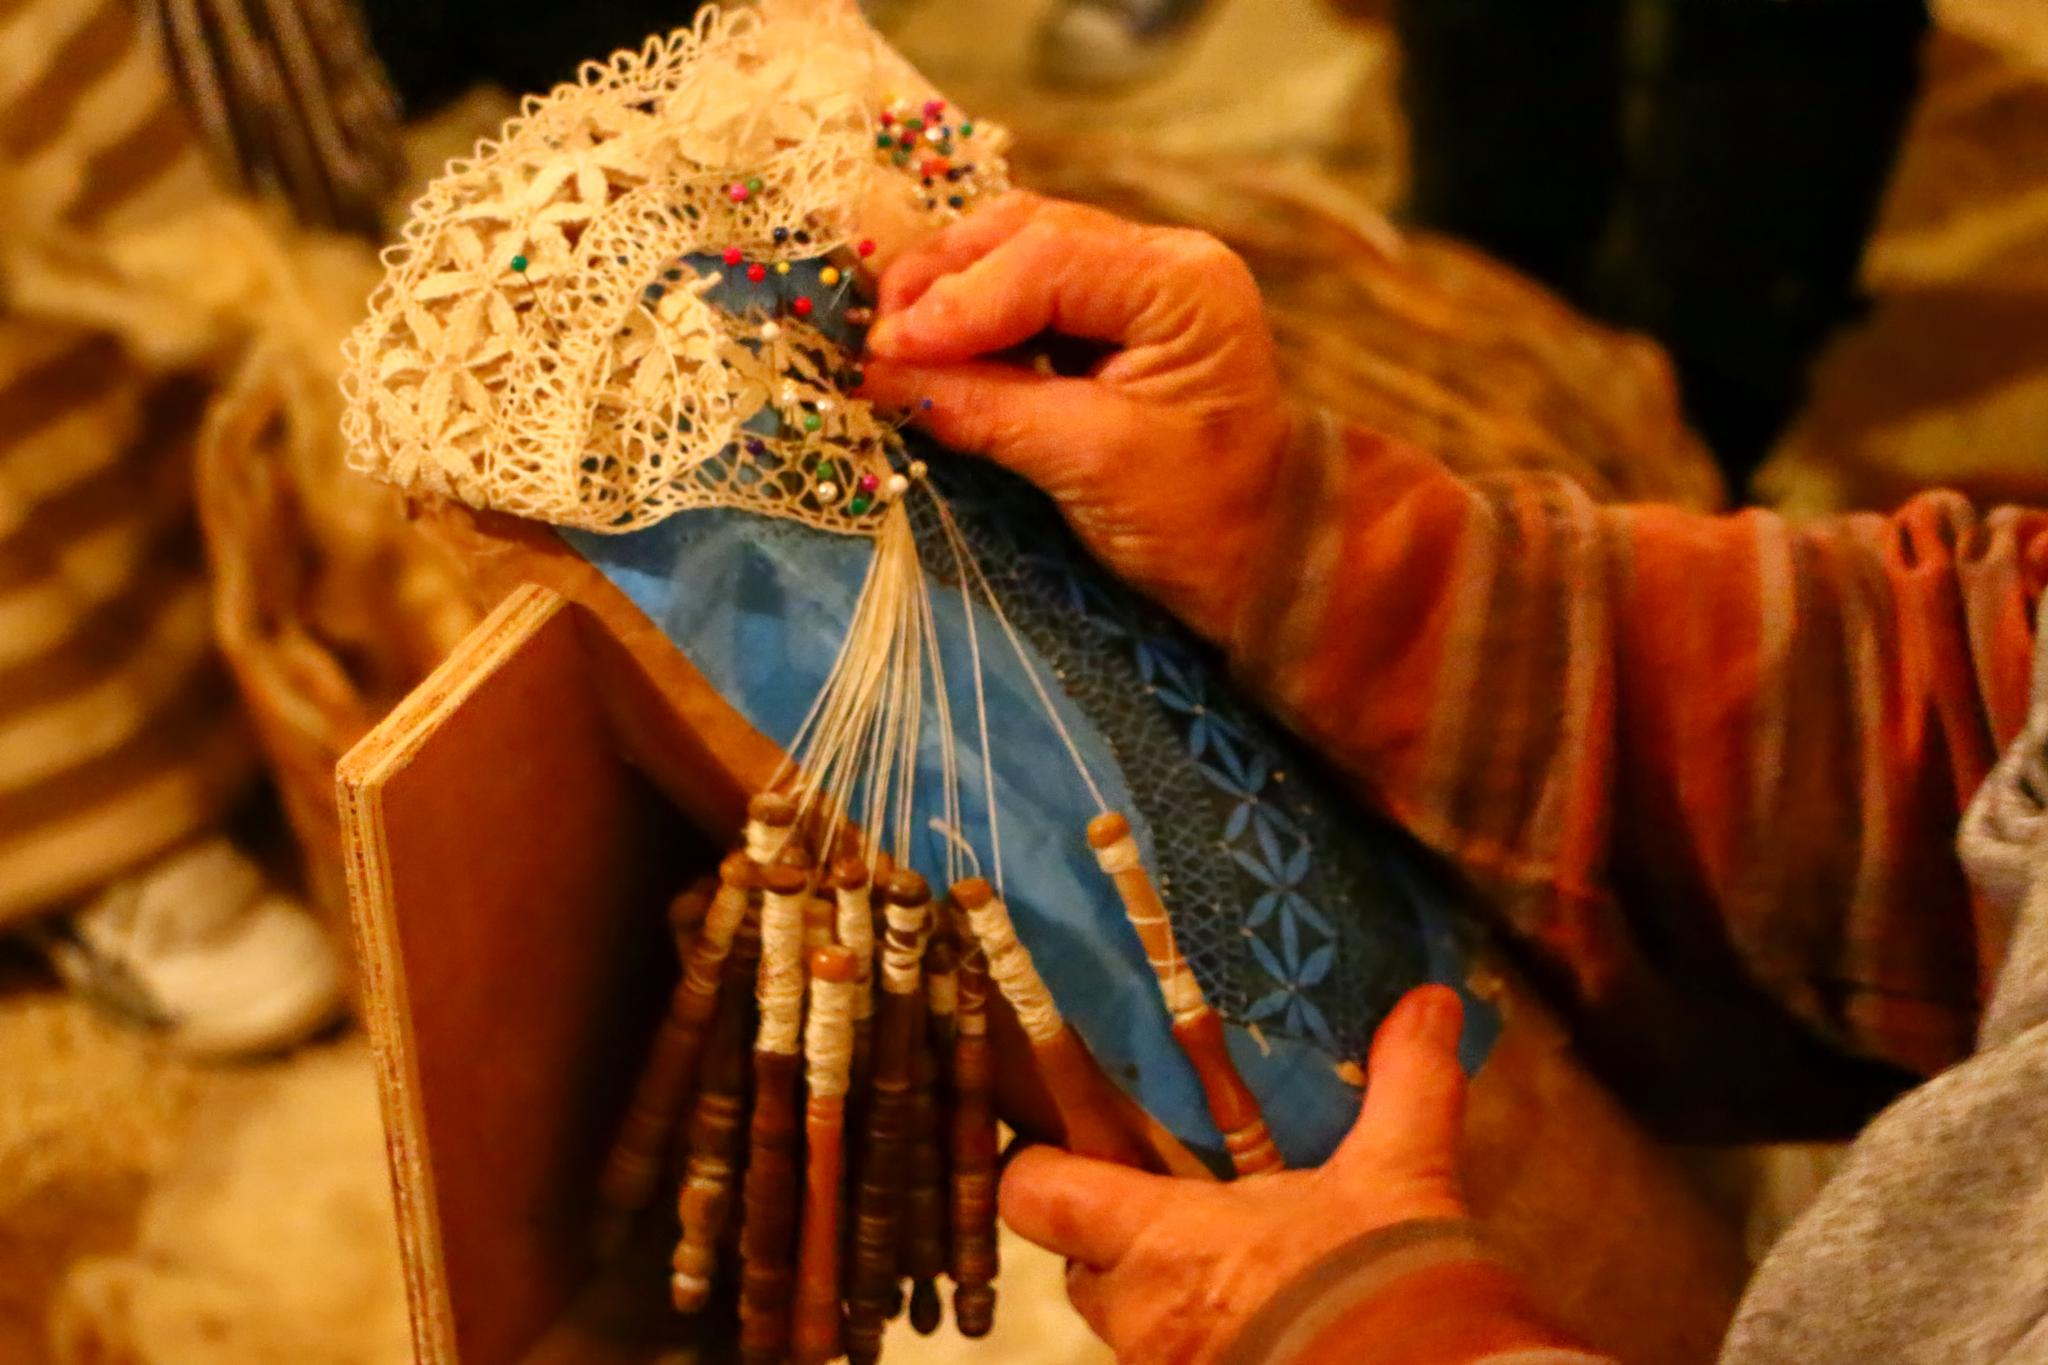 The Art and Craft of Lacing by Charlot Scicluna